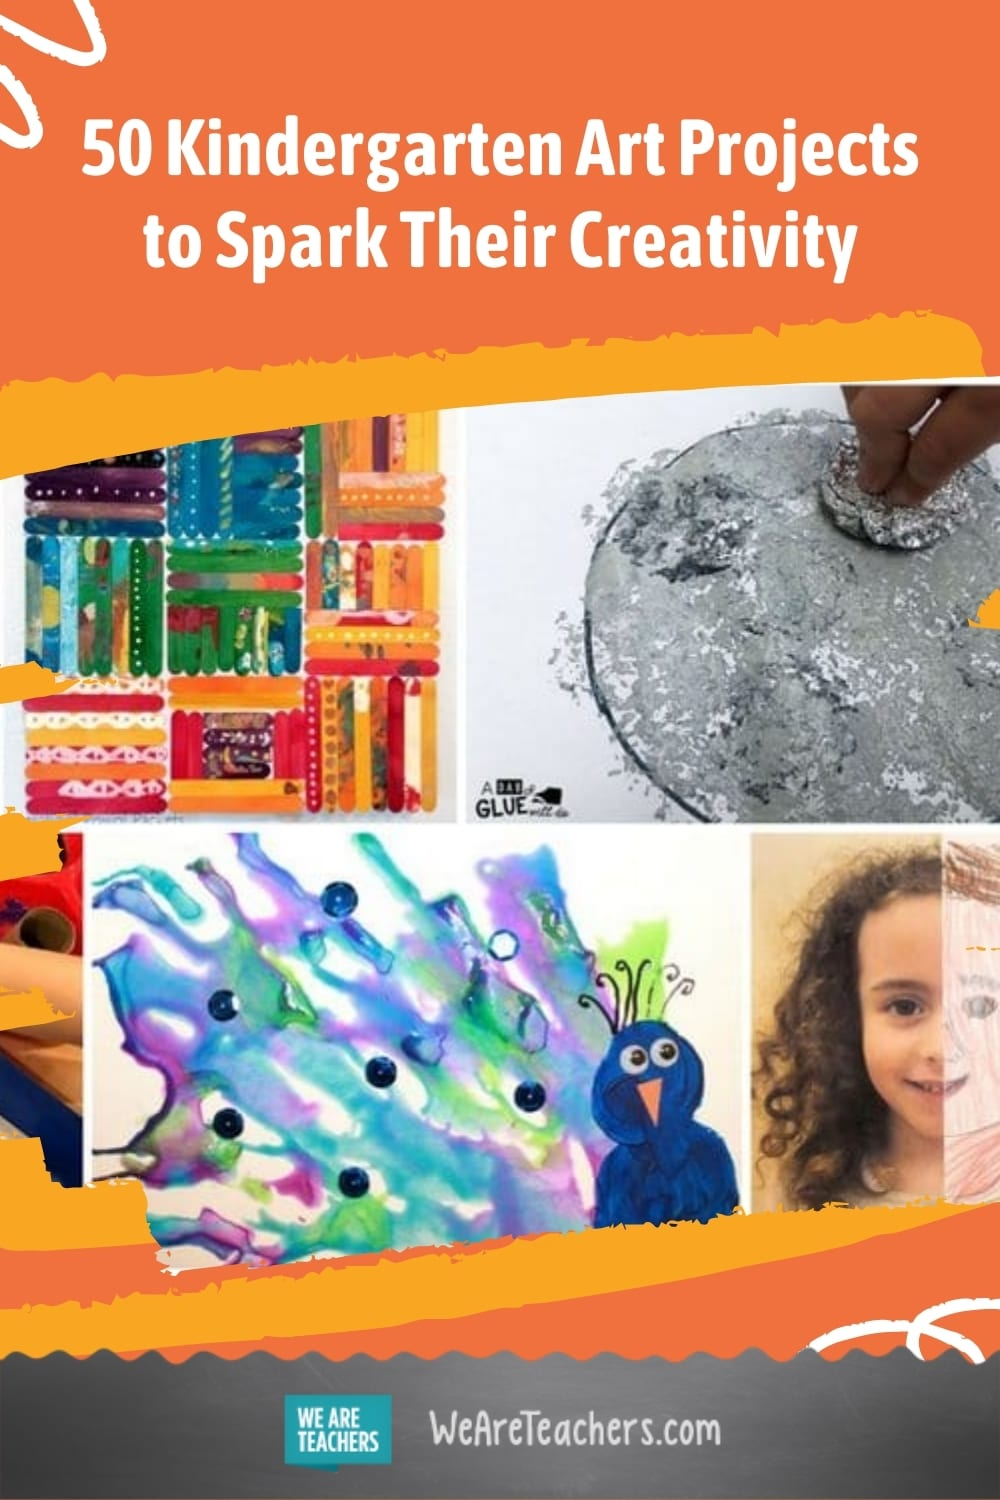 50 Kindergarten Art Projects to Spark Their Creativity